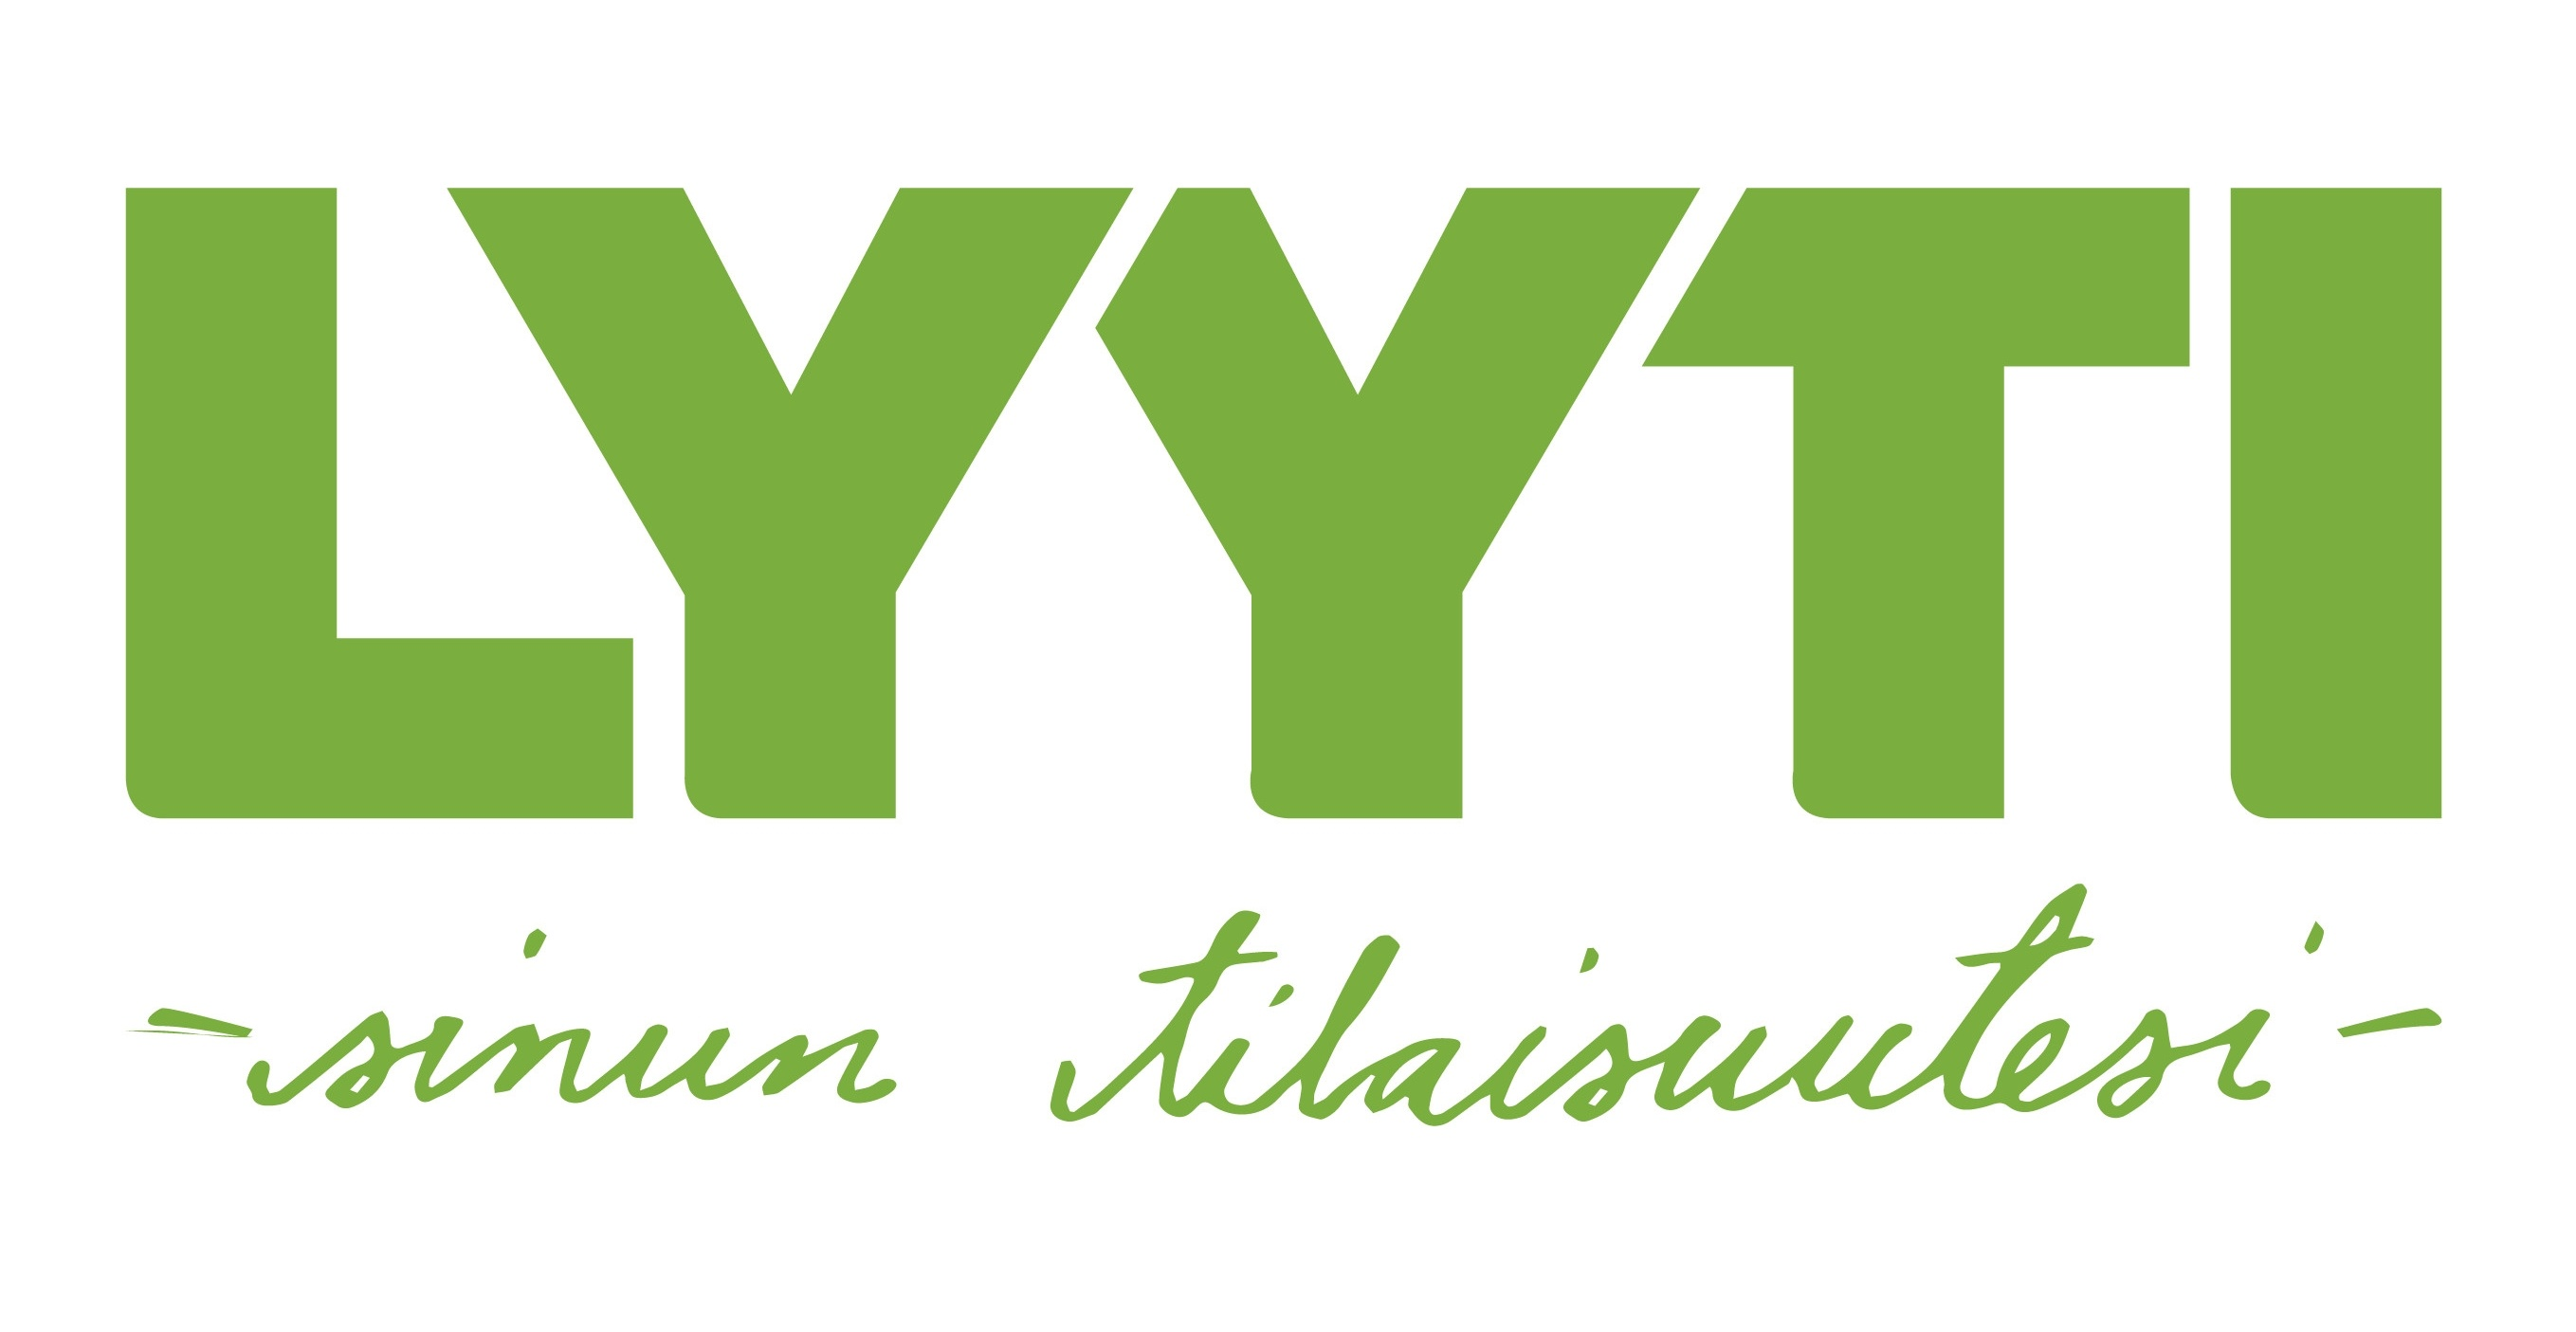 LYYTI_slogan-652812-edited.jpg